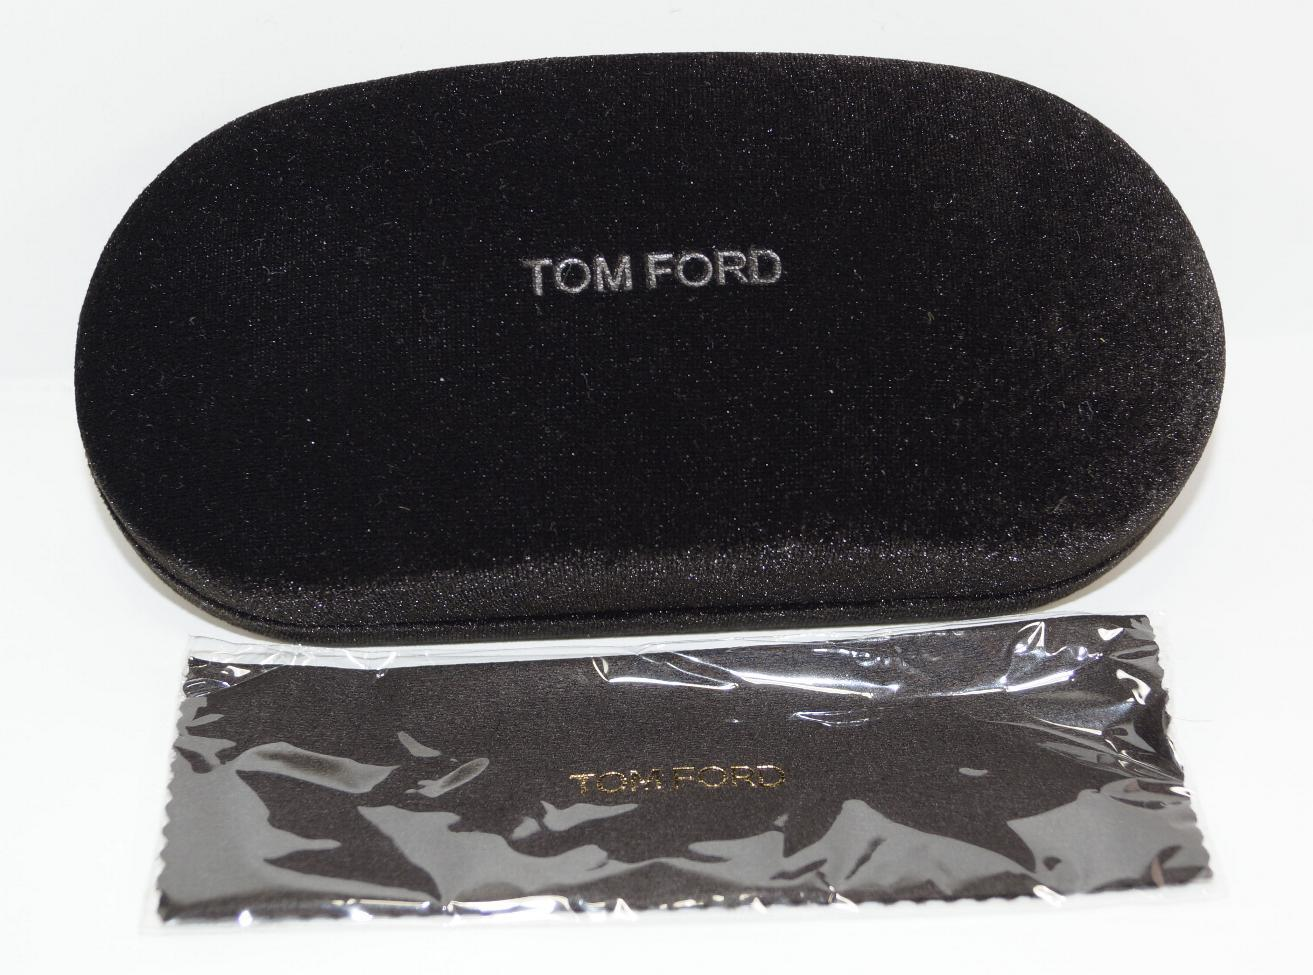 73e78c3cff74 57. 57. NEW AUTH TOM FORD VELVET BLACK SUNGLASSES EYEGLASSES HARD CASE W  CLEANING CLOTH  NEW AUTH TOM FORD VELVET BLACK SUNGLASSES ...